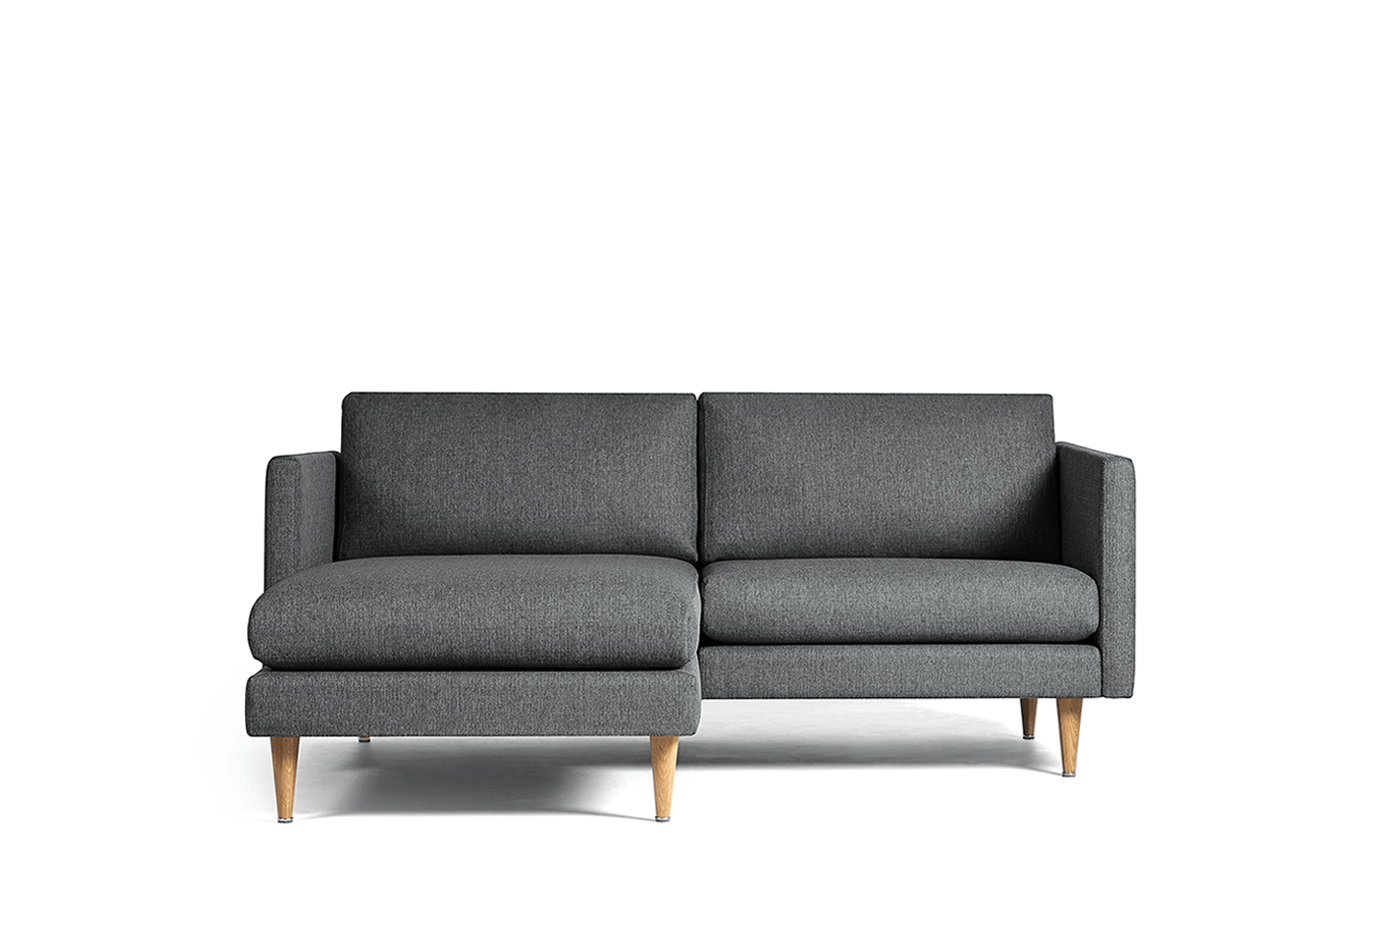 Small Corner Sofa LEAF Mini, Chaise Lounge on Left - Oot-Oot Studio